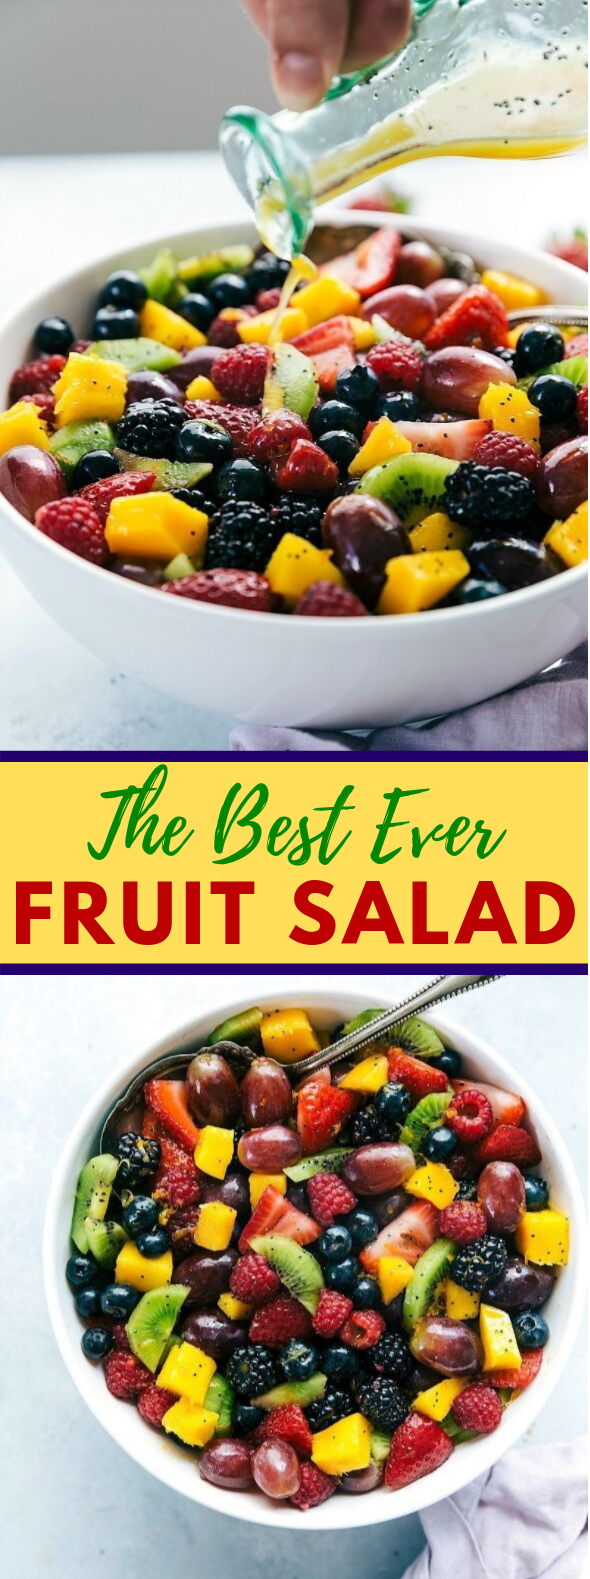 THE BEST EVER FRUIT SALAD #diet #healthy